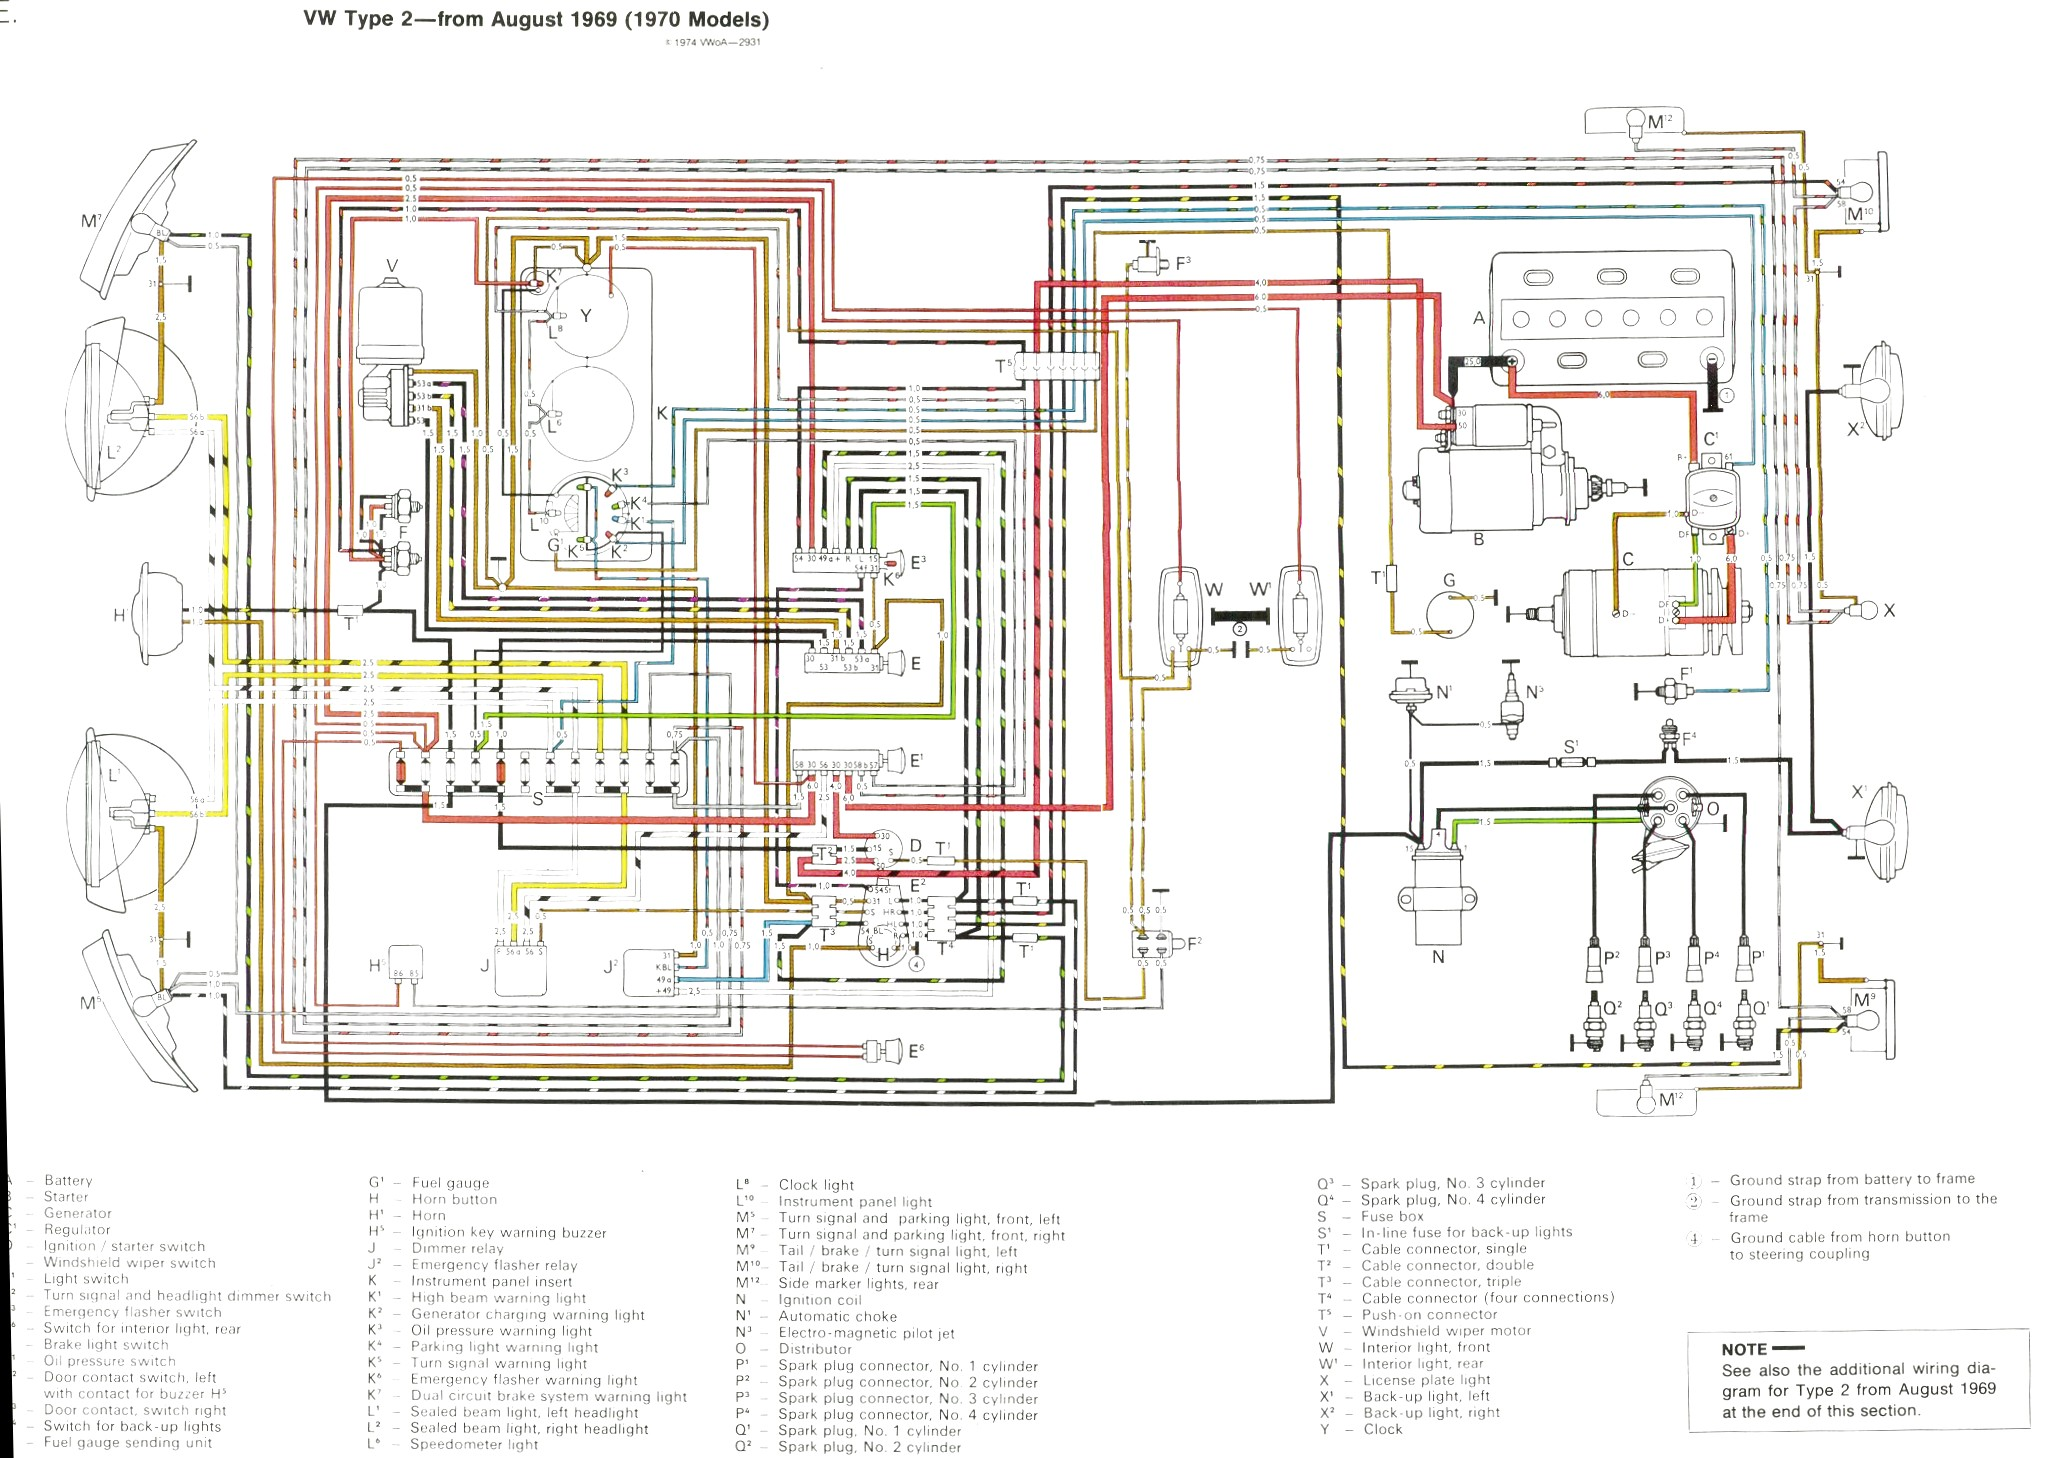 fuel gauge issues advice needed asap earlybay com forums here is the wiring diagram simples